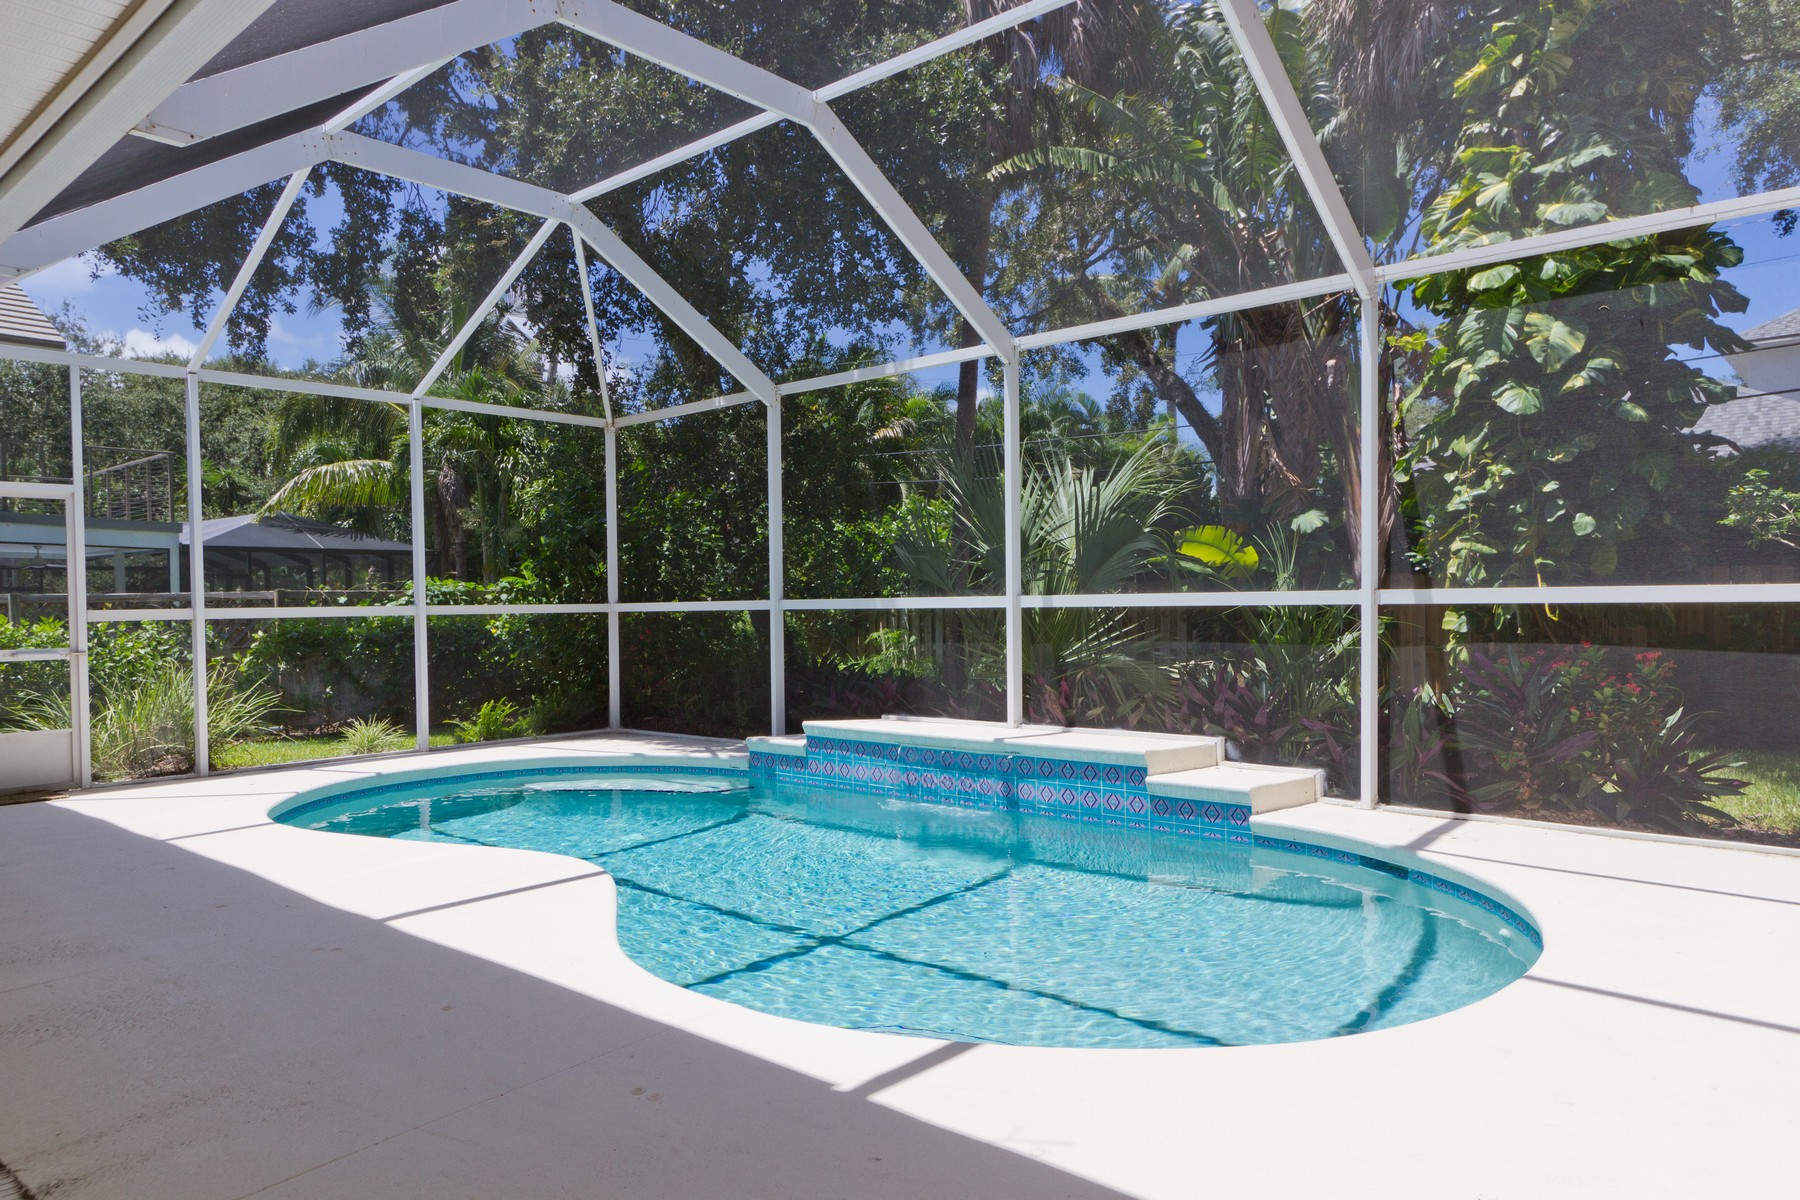 Additional photo for property listing at Gracious 4BD/3BA Pool Home! 901 Oyster Shell Lane Vero Beach, Florida 32963 United States